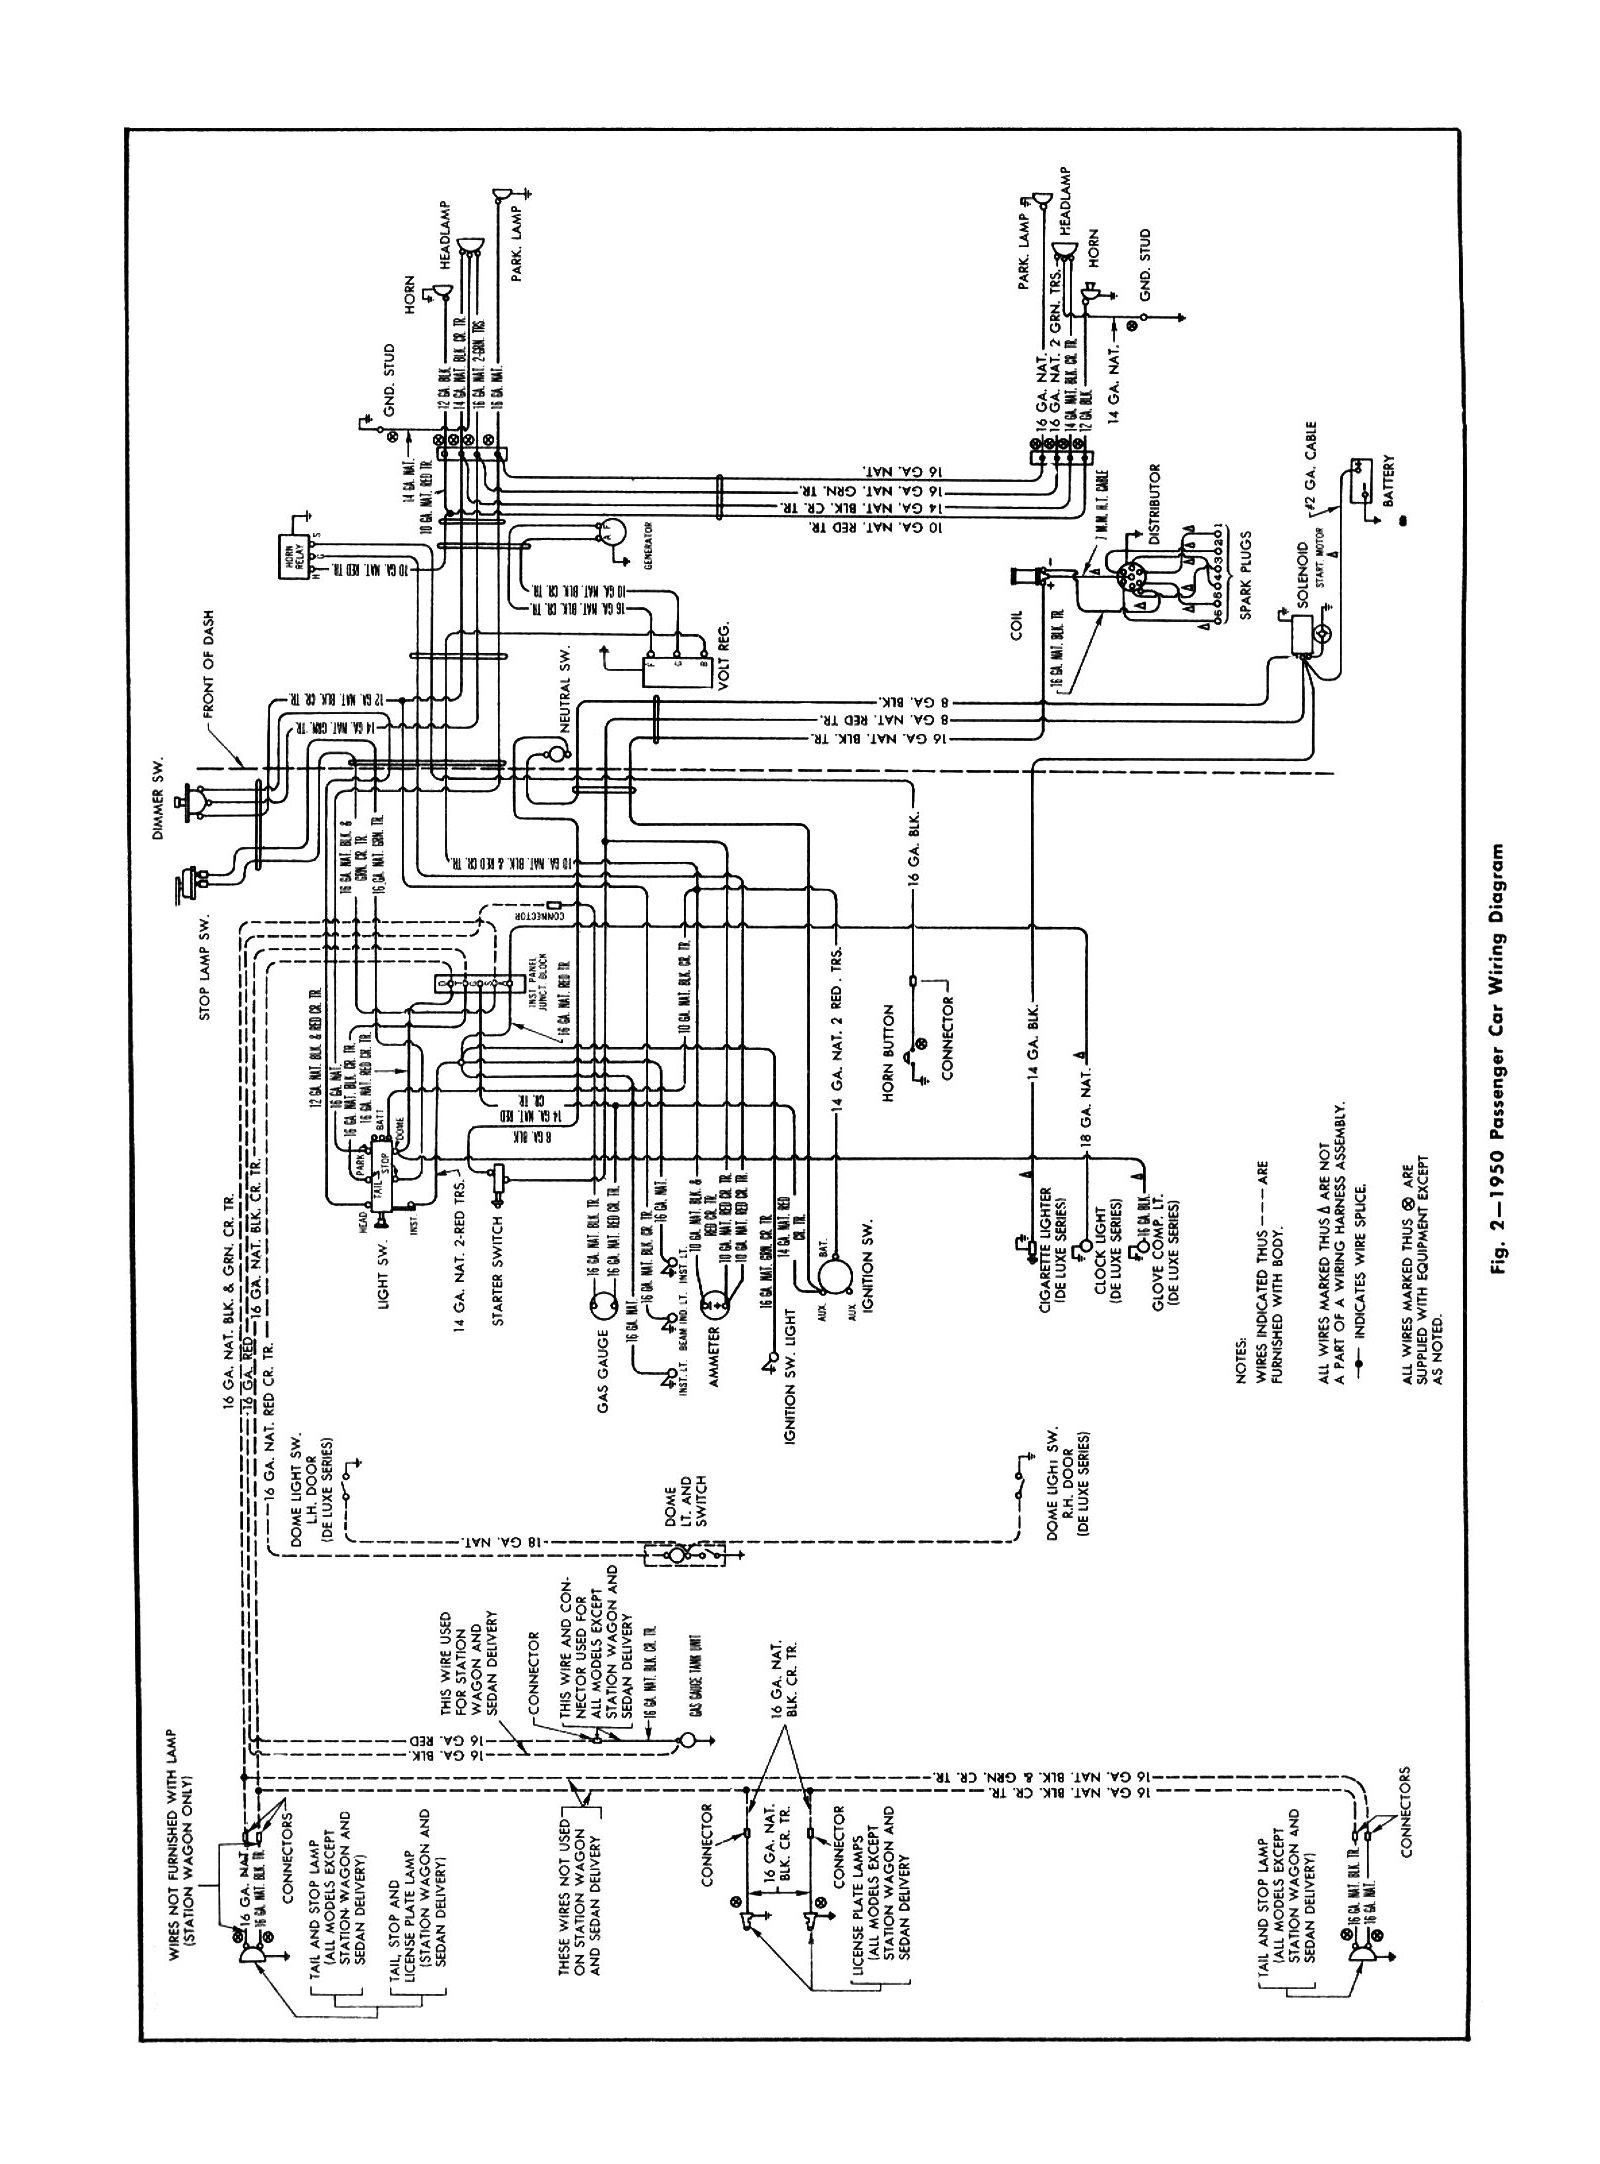 Wiring Diagrams Database